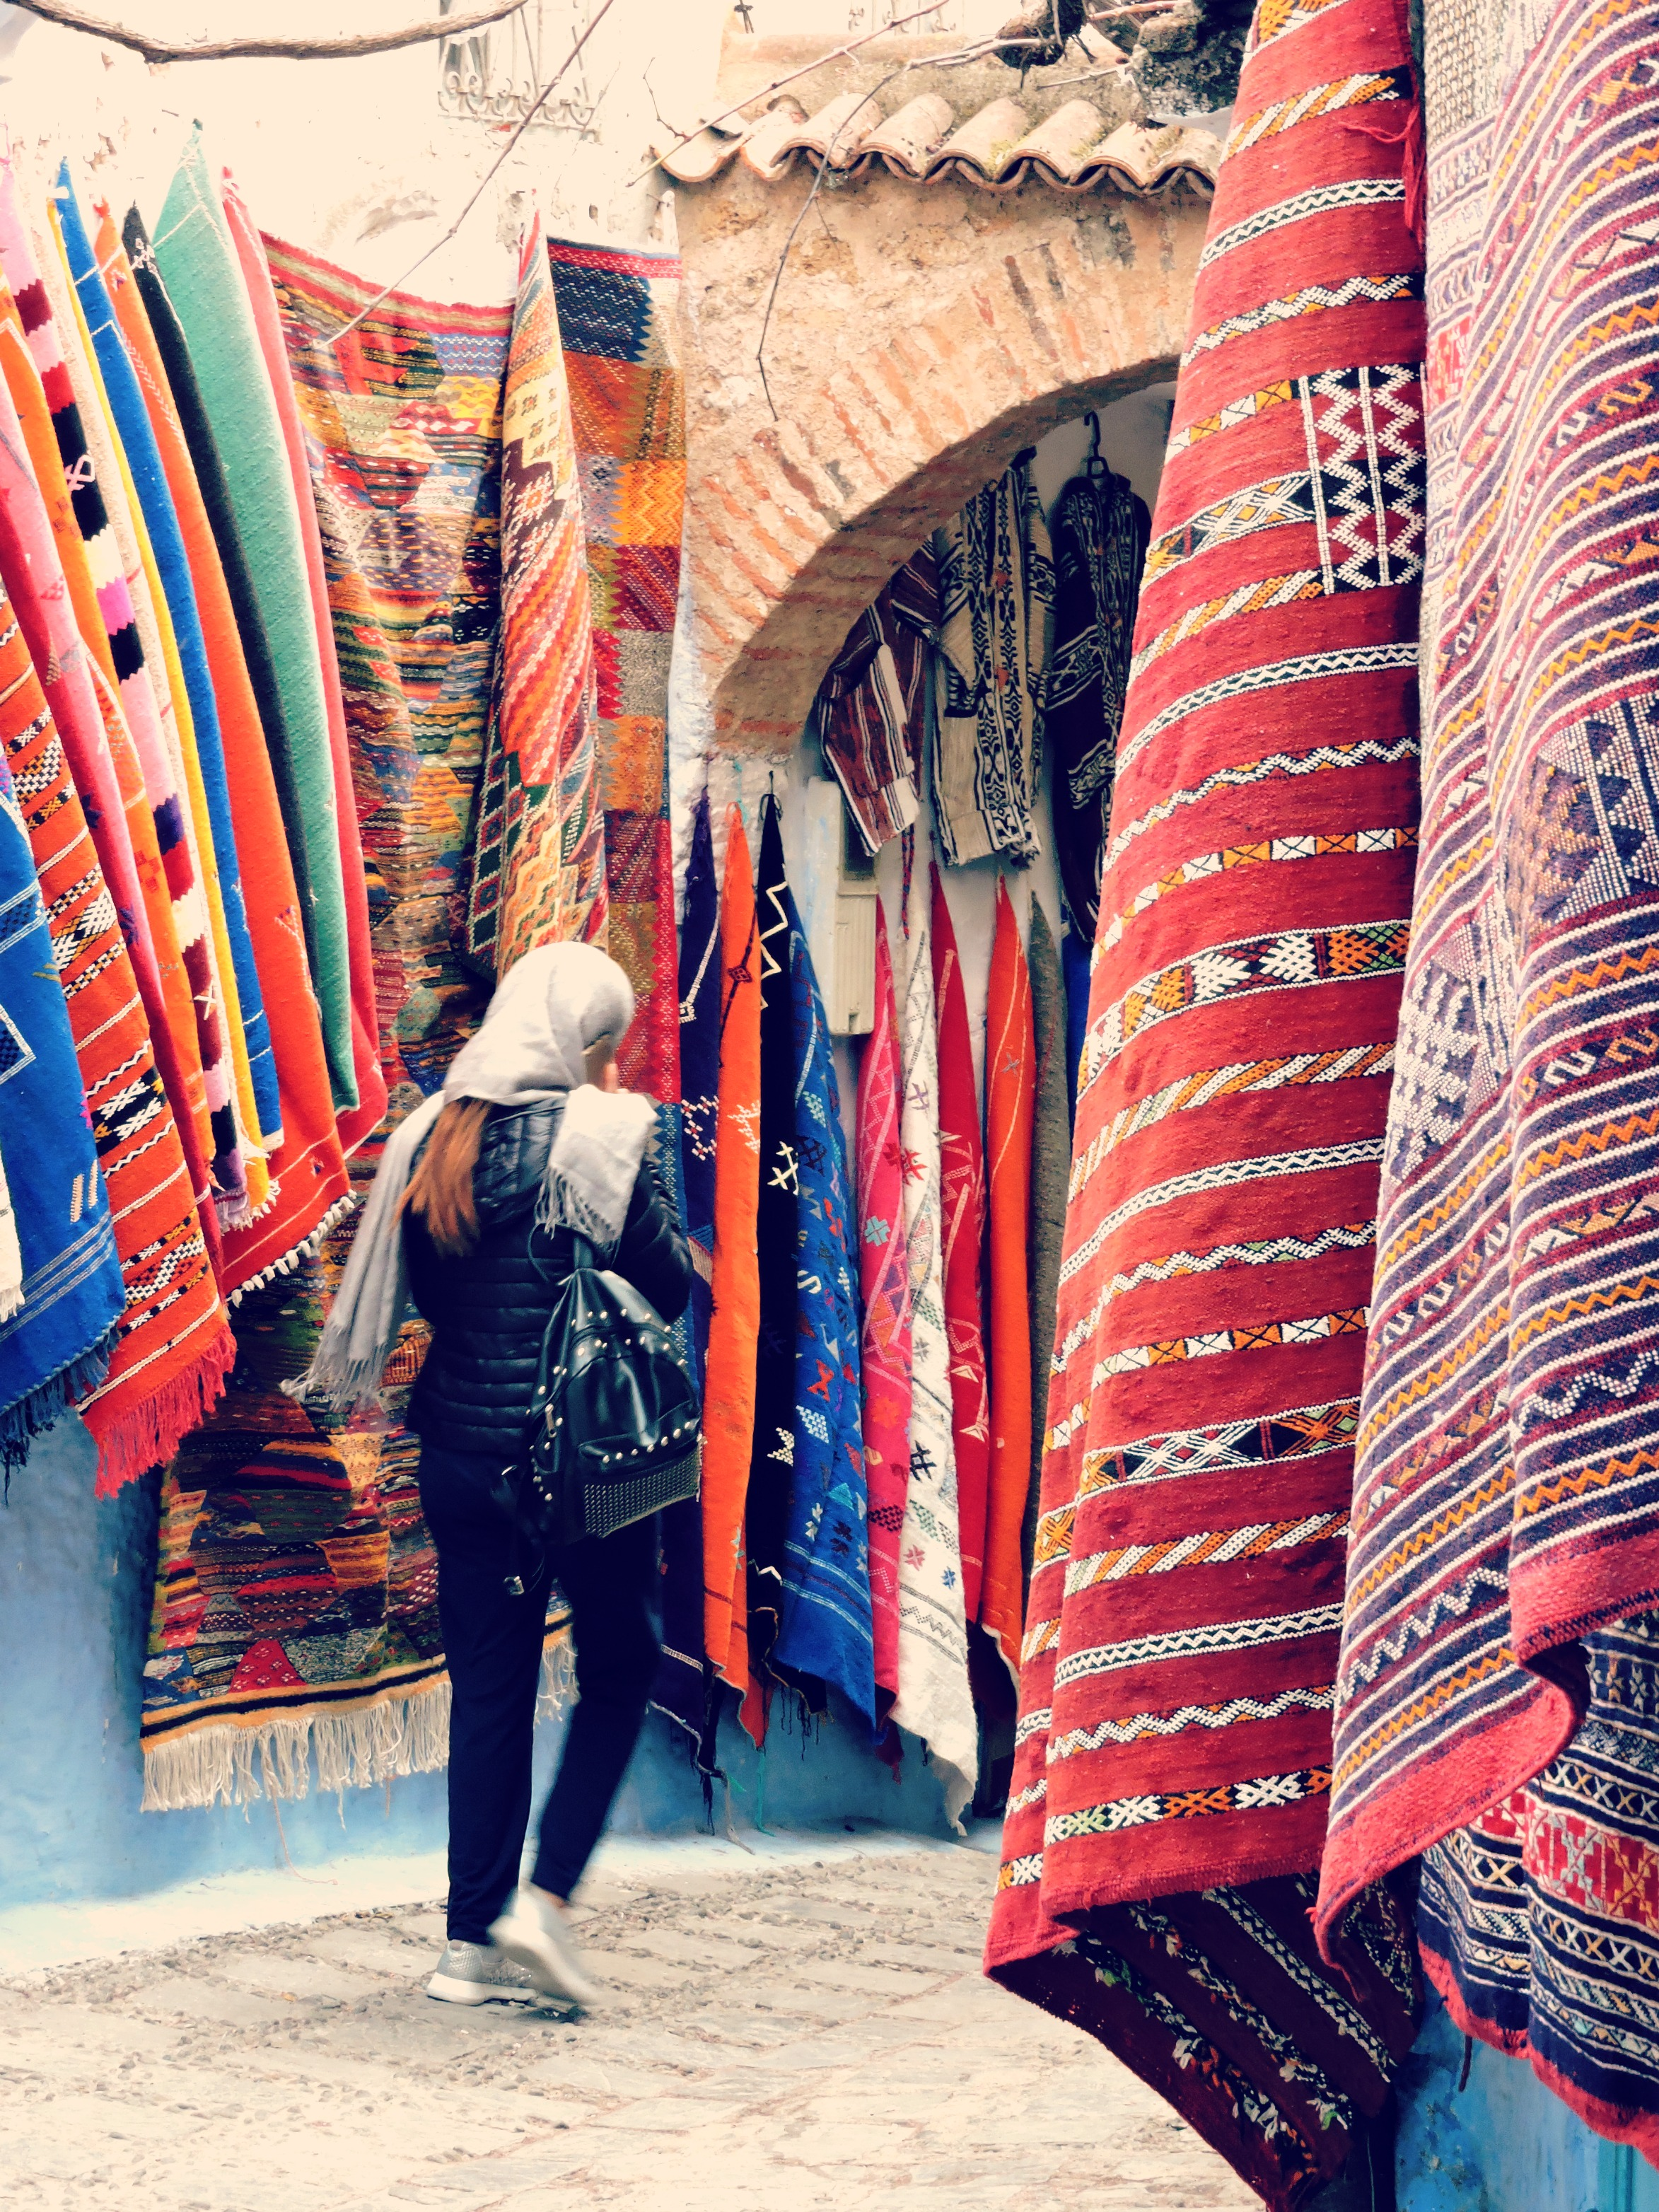 From Tangier to Chefchaouen